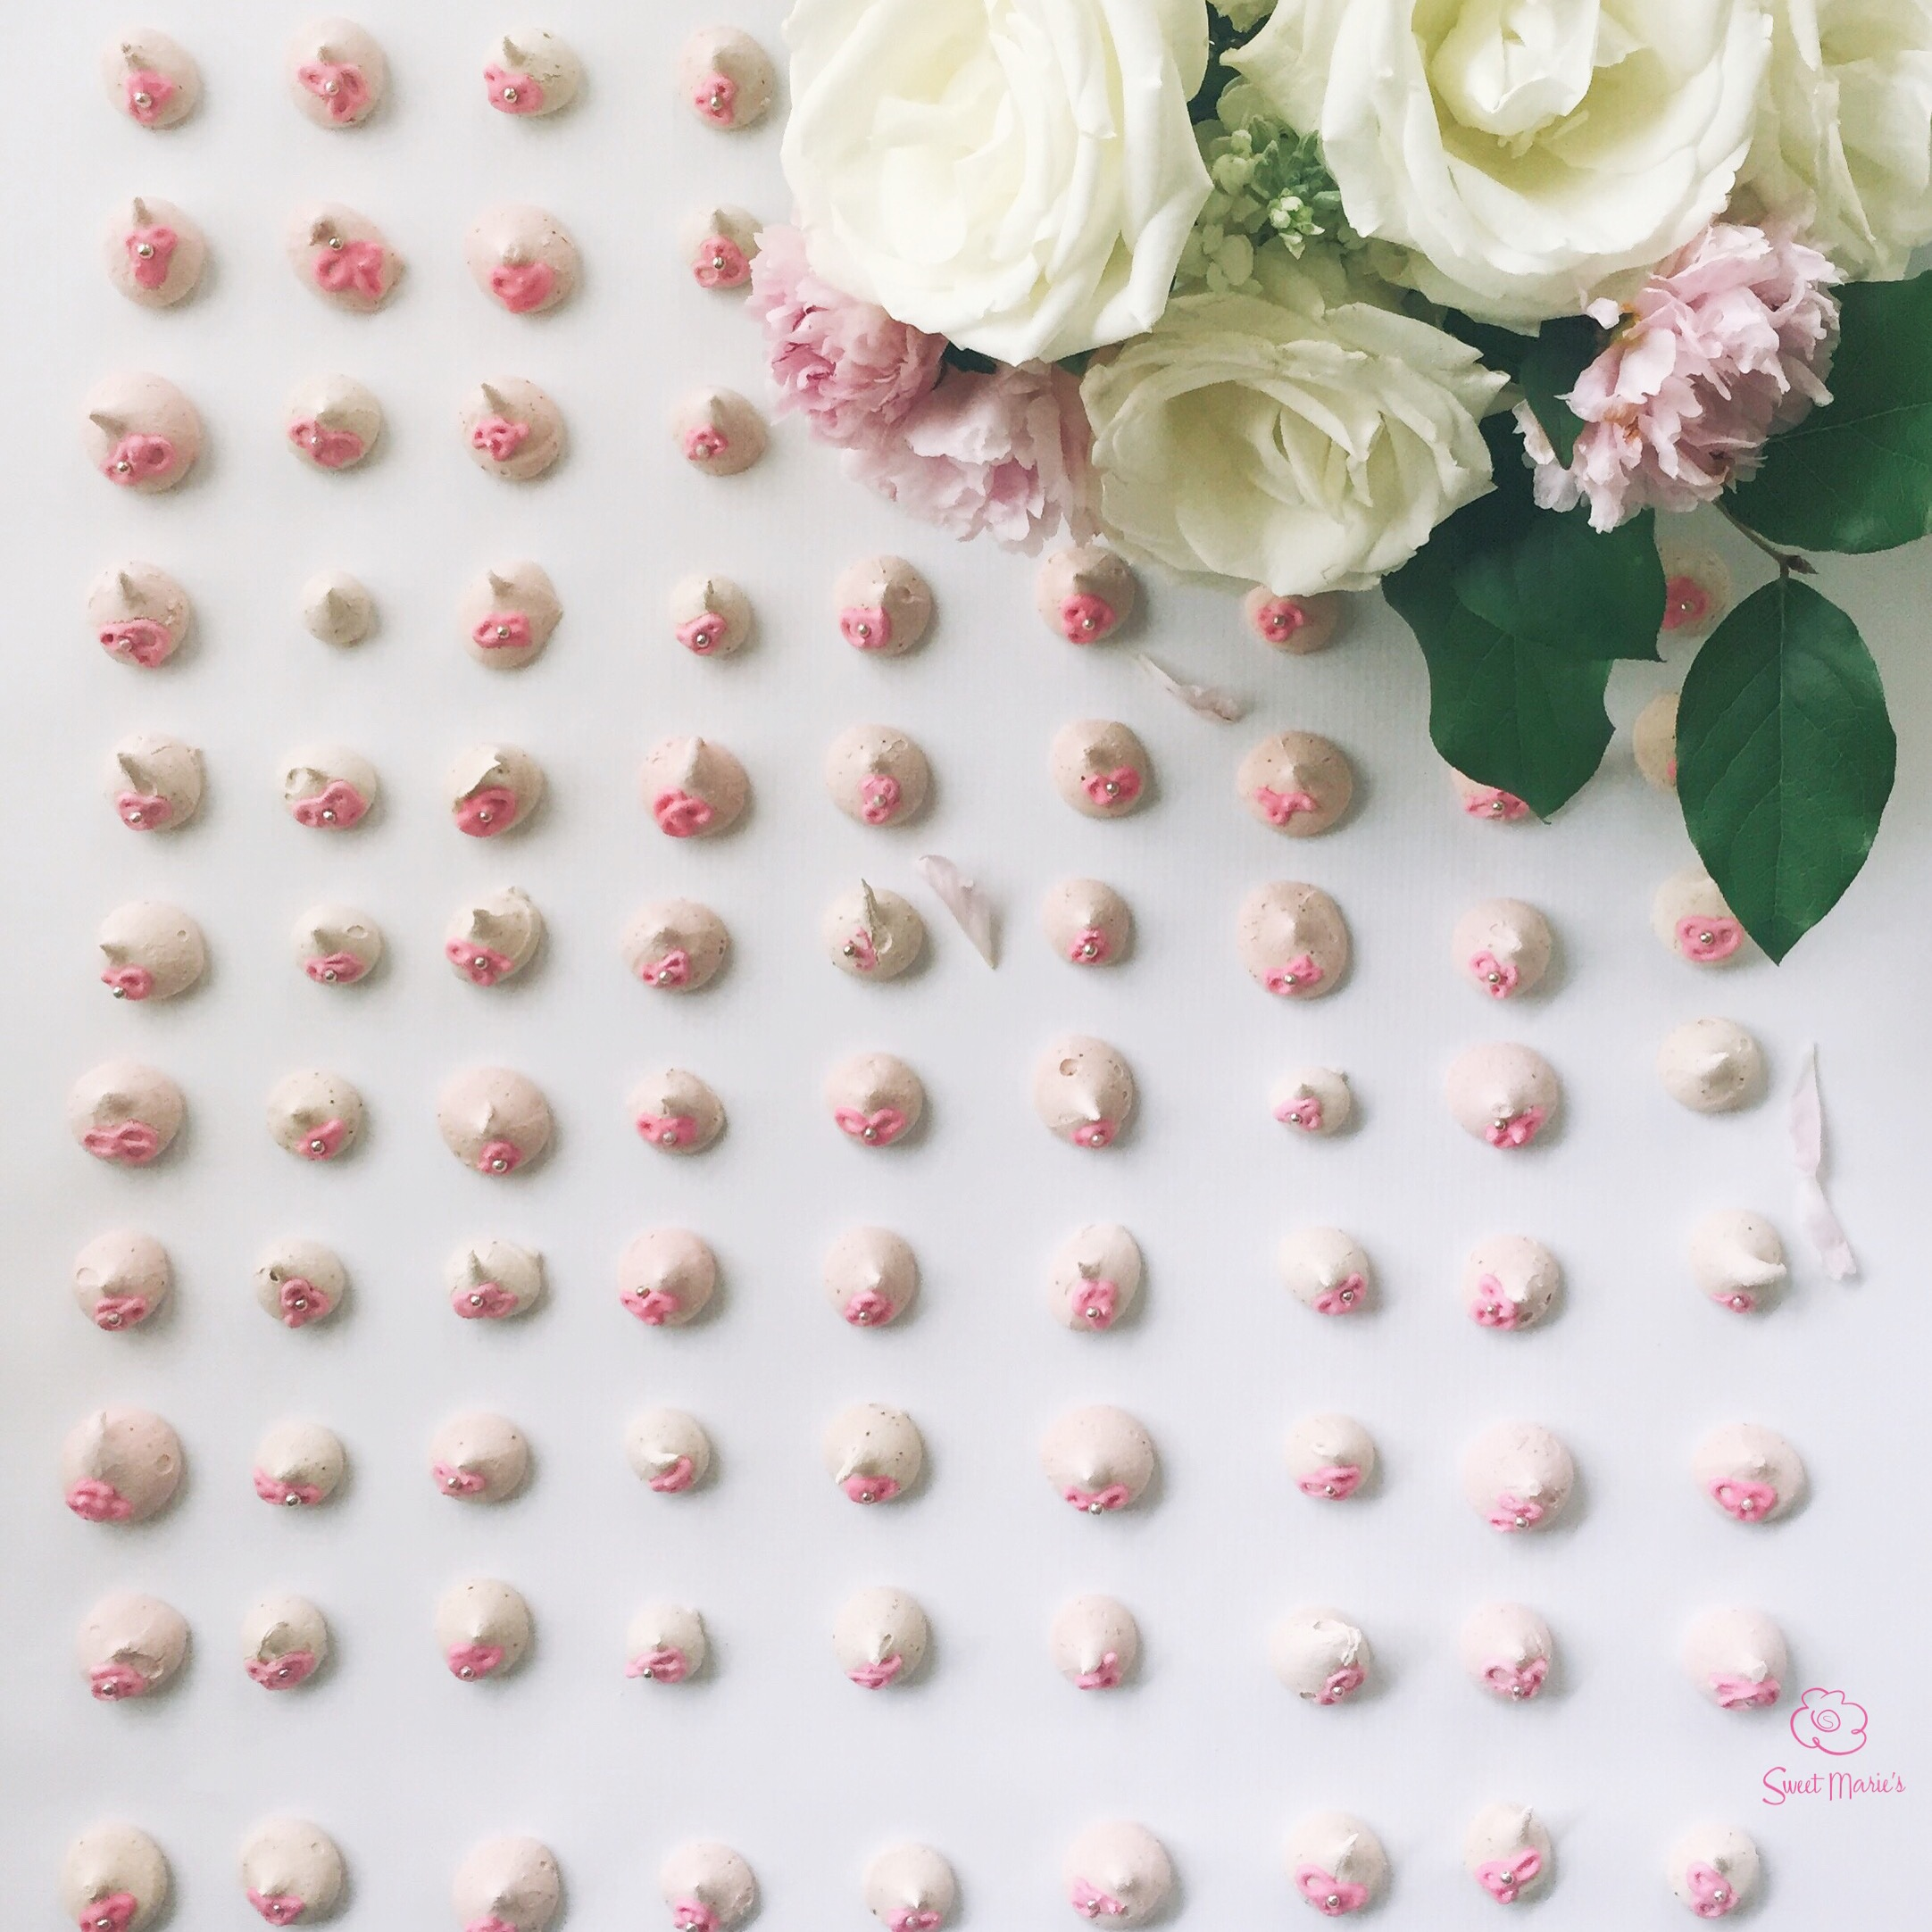 Sweet Marie's Mini Meringues